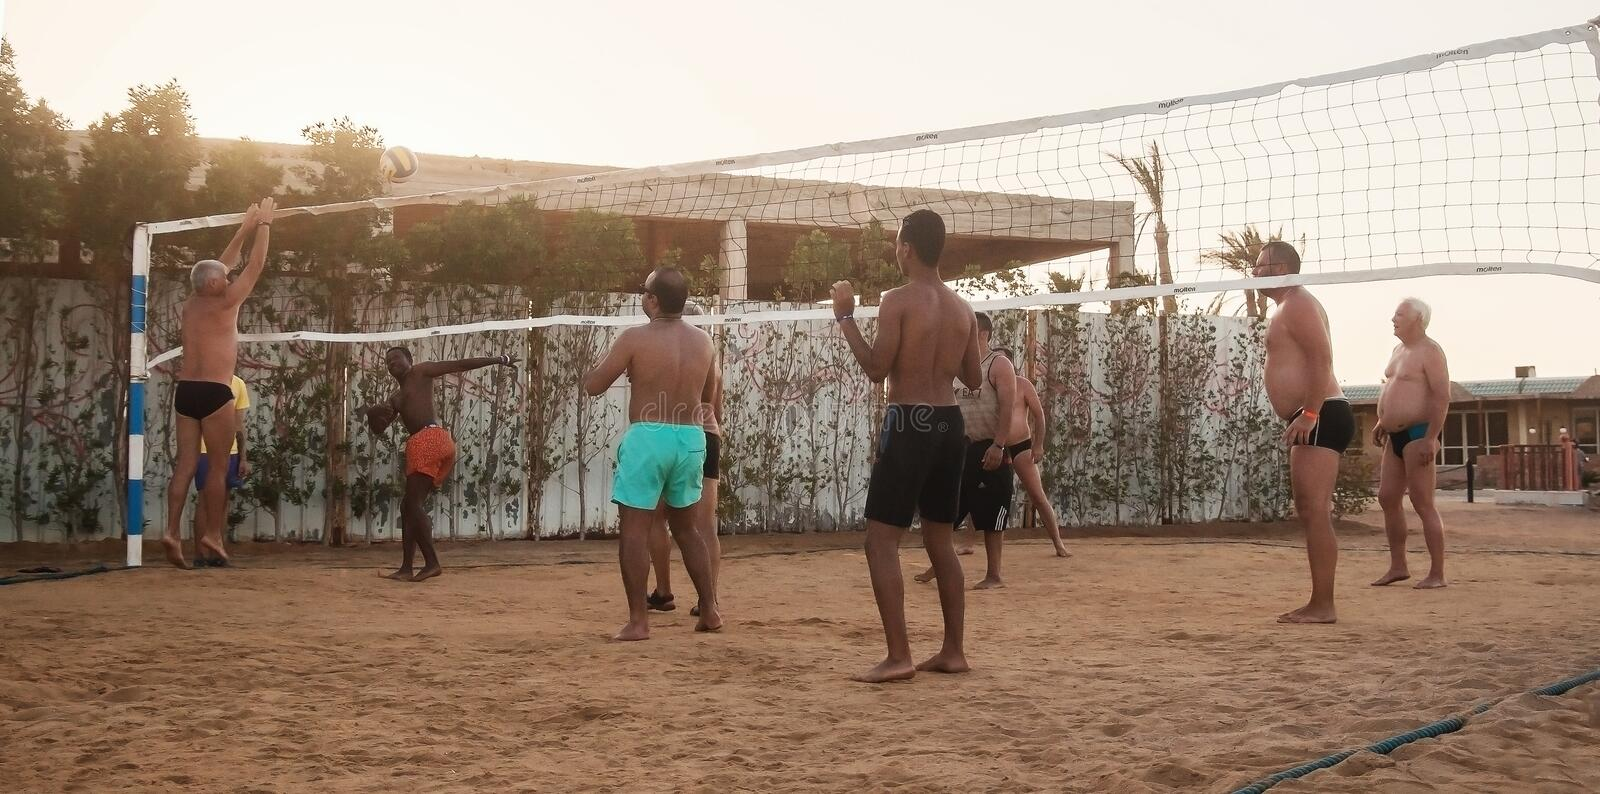 Male Caucasians, Arabs, Africans playing volleyball on the beach. Male Caucasians, Arabs, Africans and playing volleyball on the beach at sunset. Egypt. Hurghada royalty free stock photo